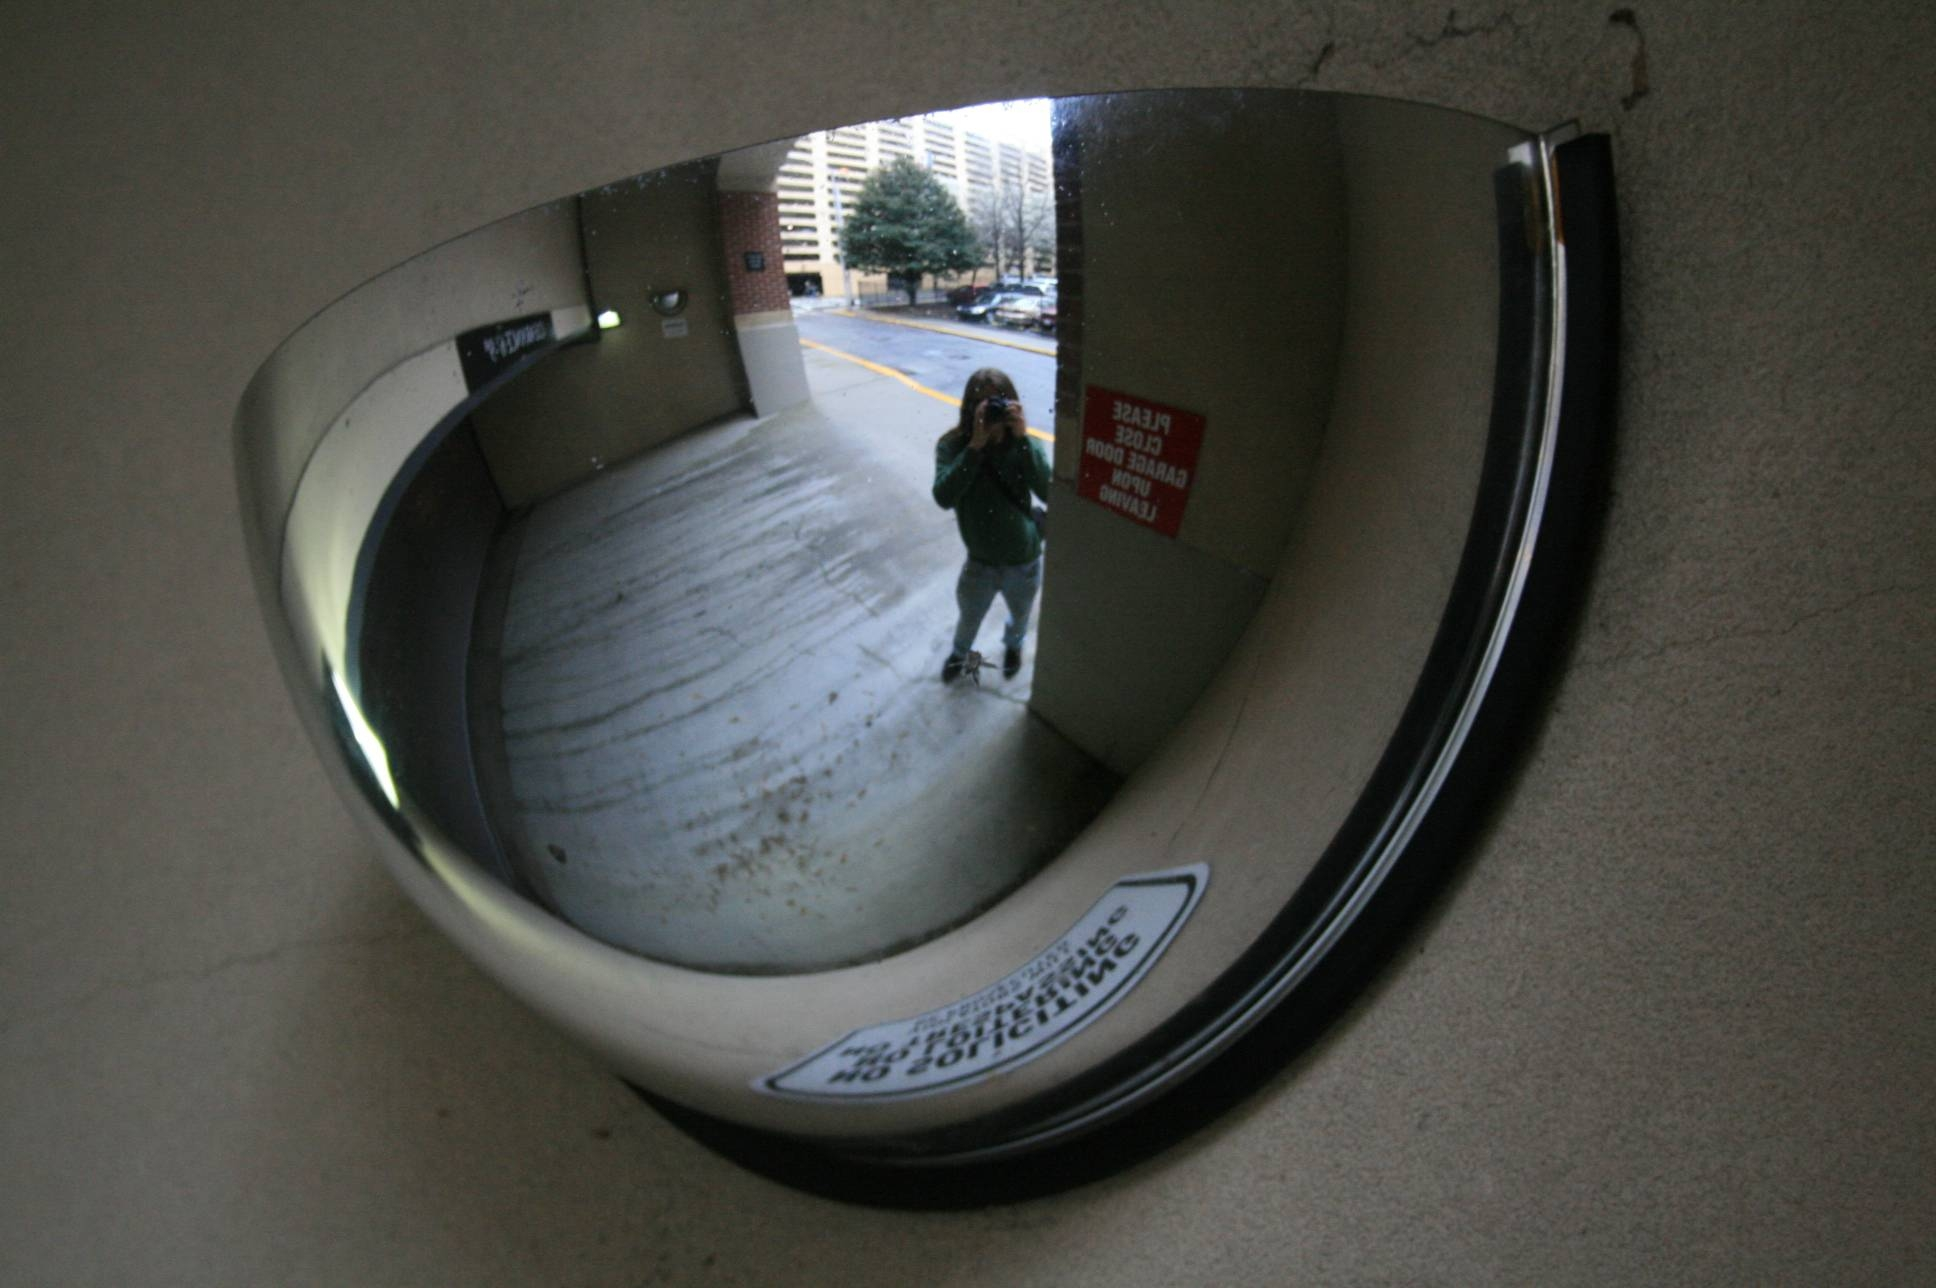 File:2008-03-14 Convex Mirror In Atlanta Garage Entrance in Convex Mirrors (Image 4 of 15)